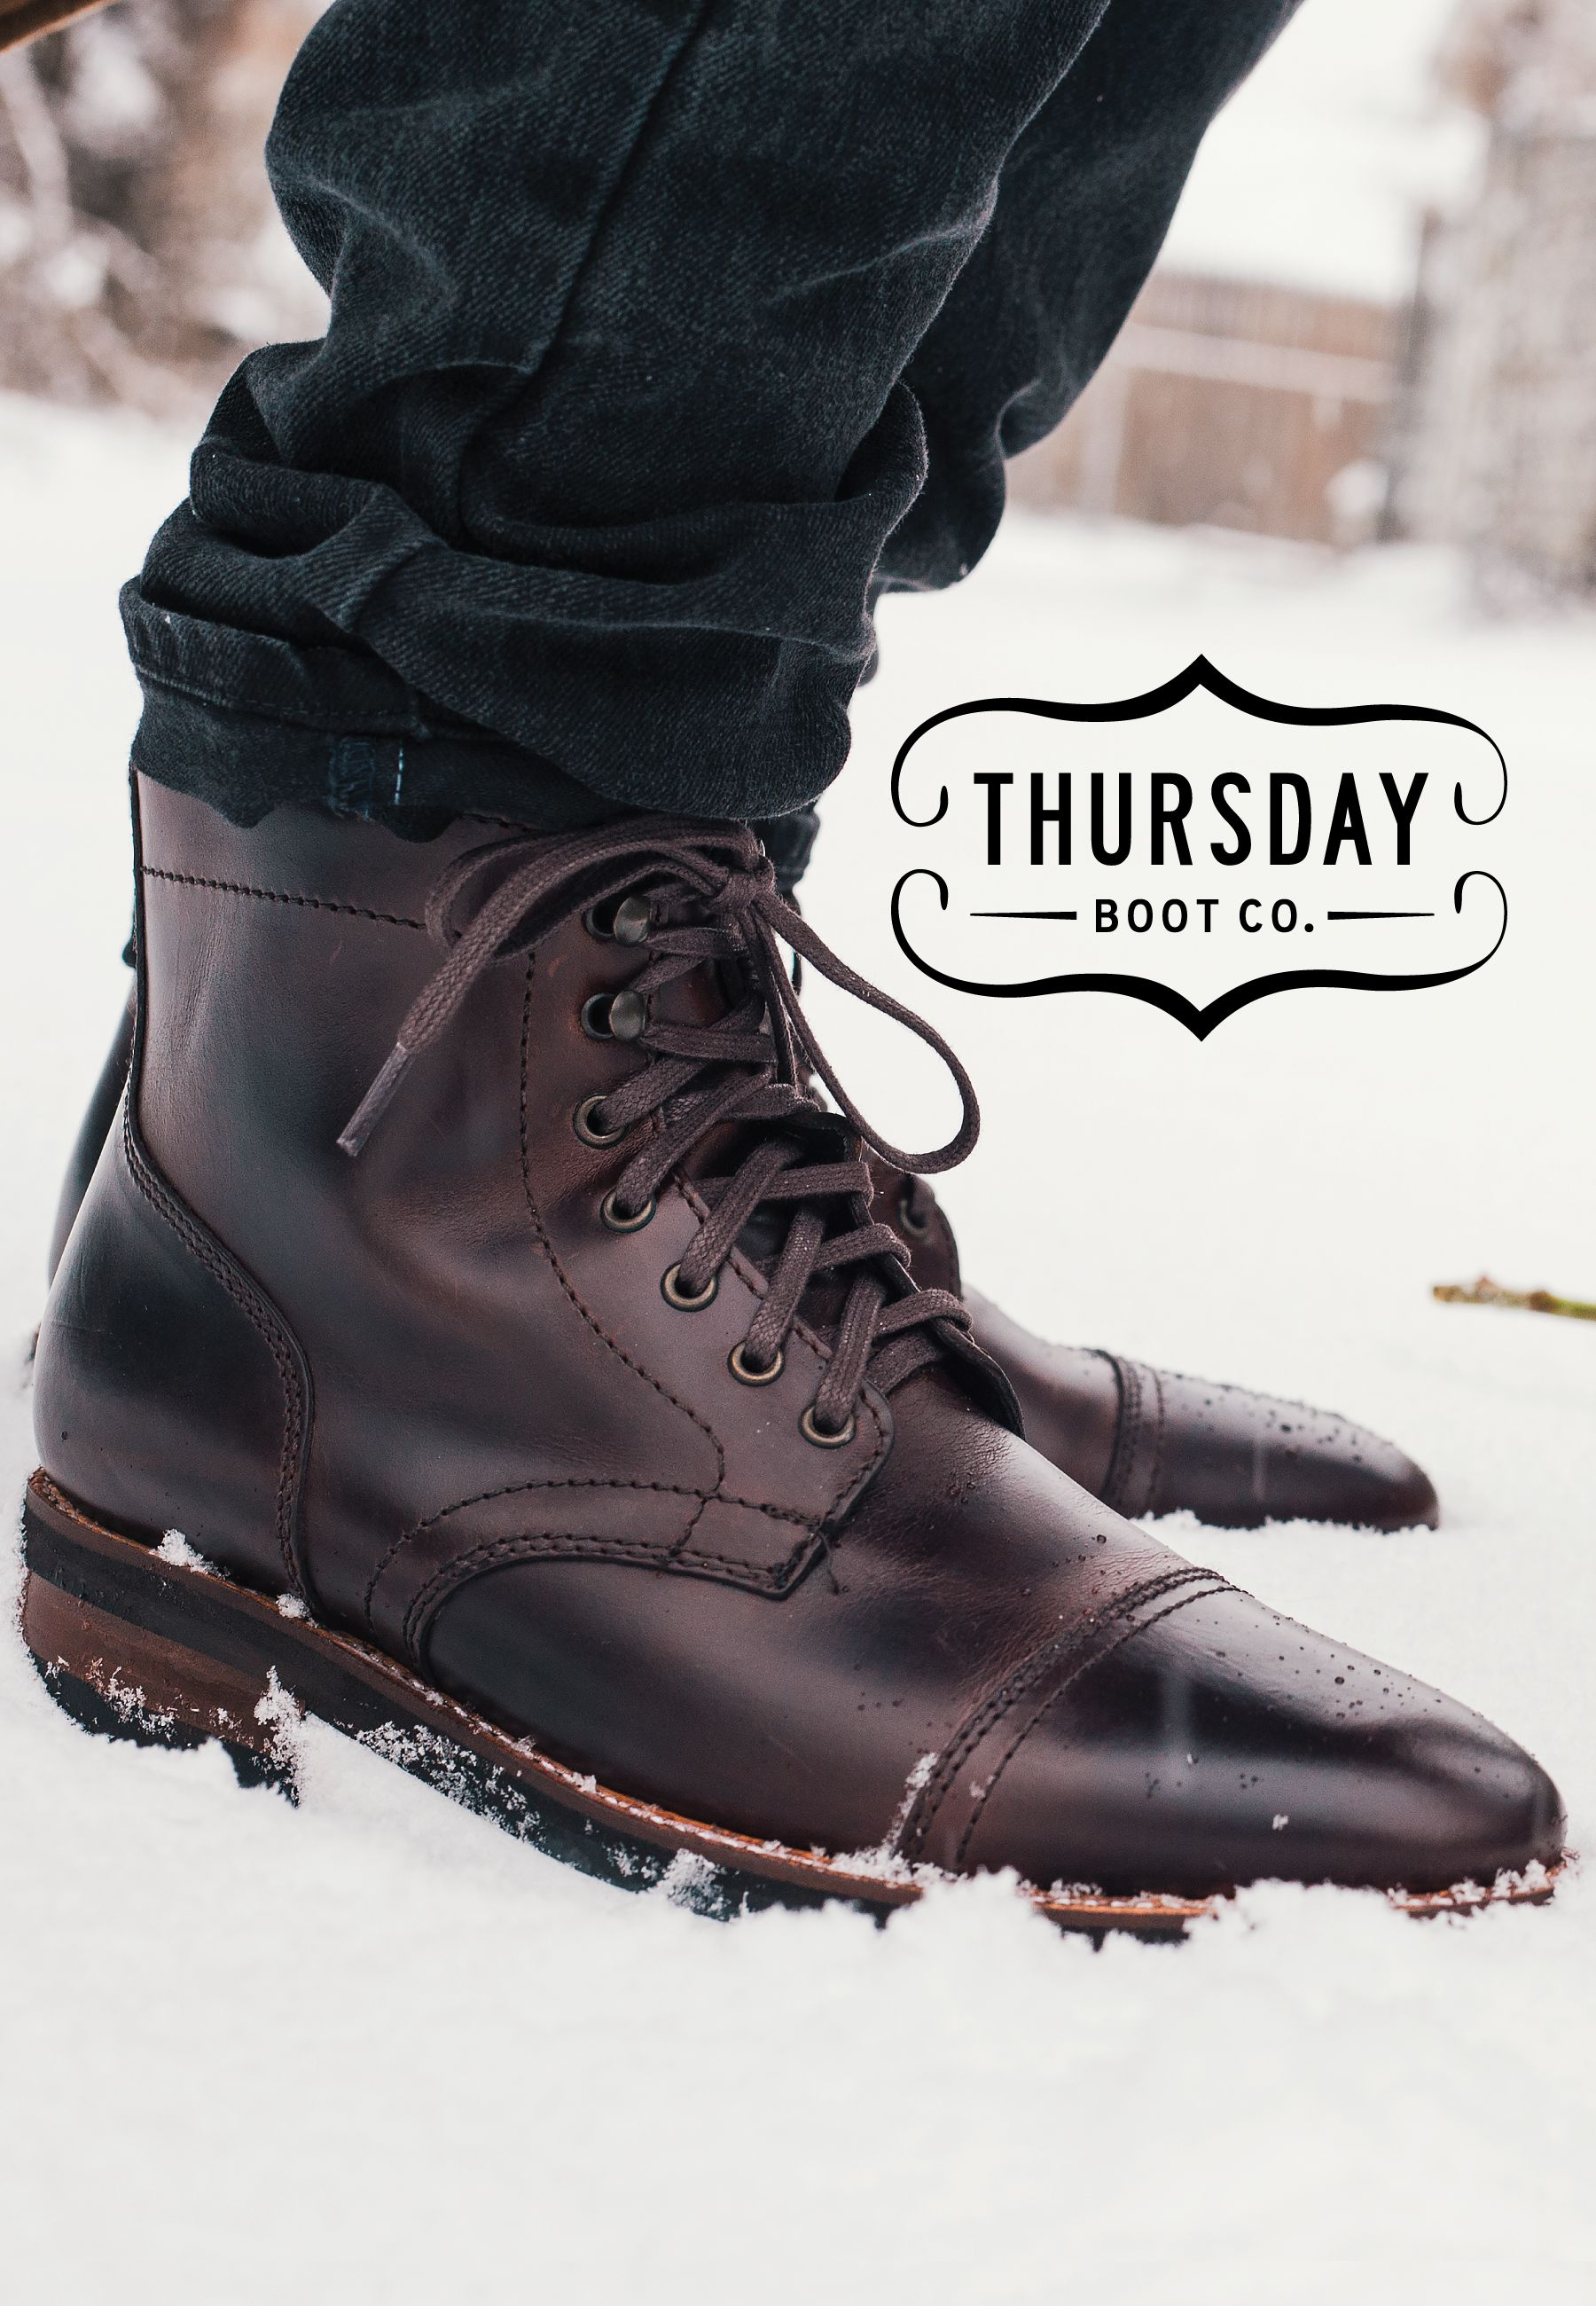 12a273883b3 Shop the Brown Captain Boot at thursdayboots.com. 3